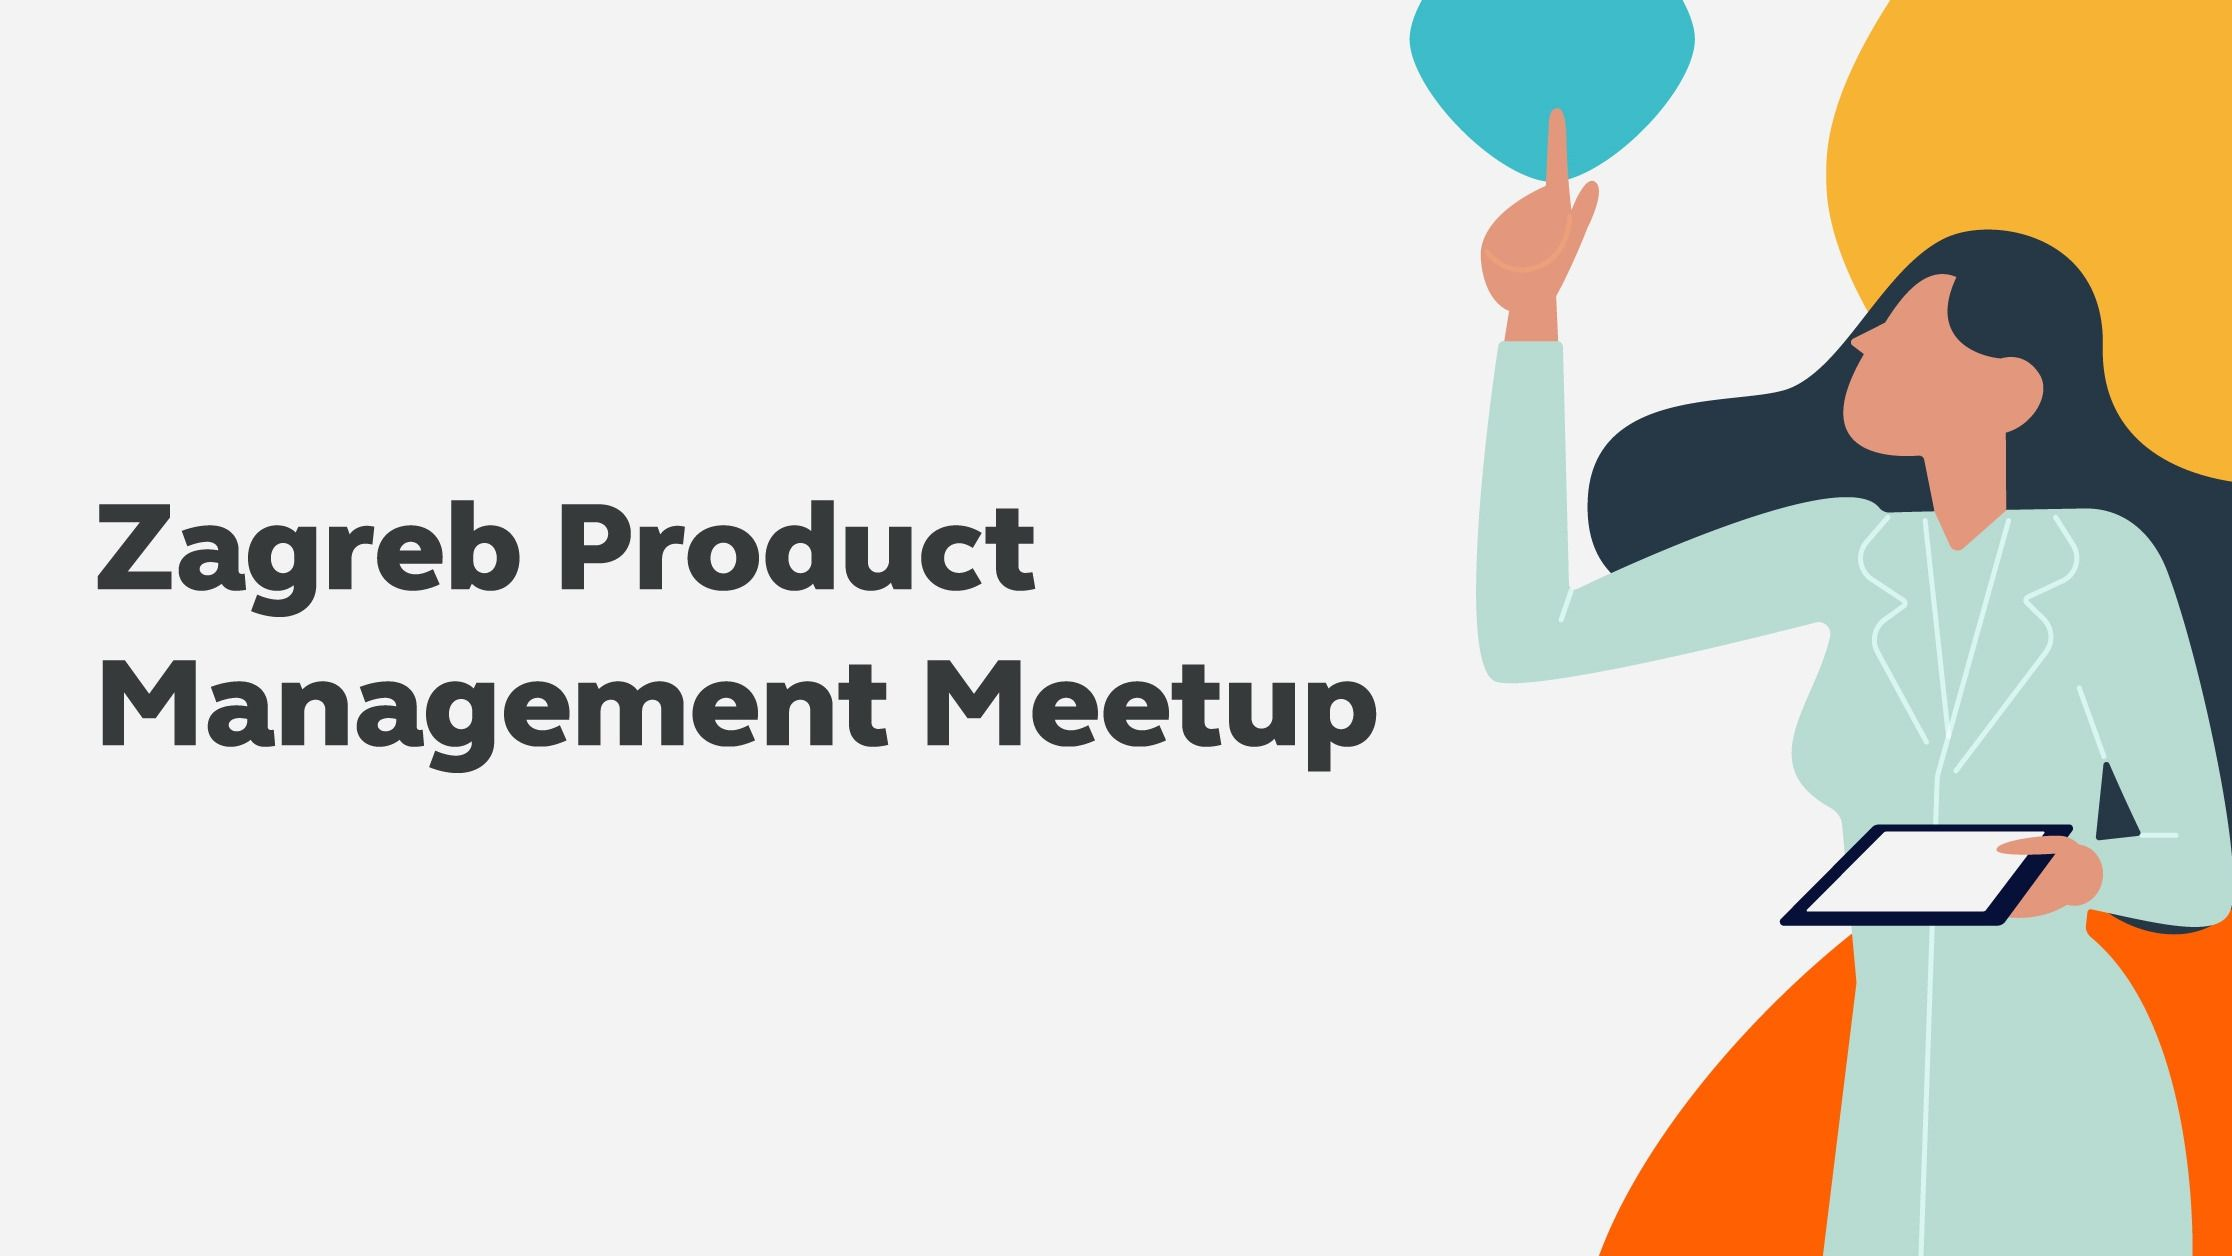 Zagreb Product Management Meetup